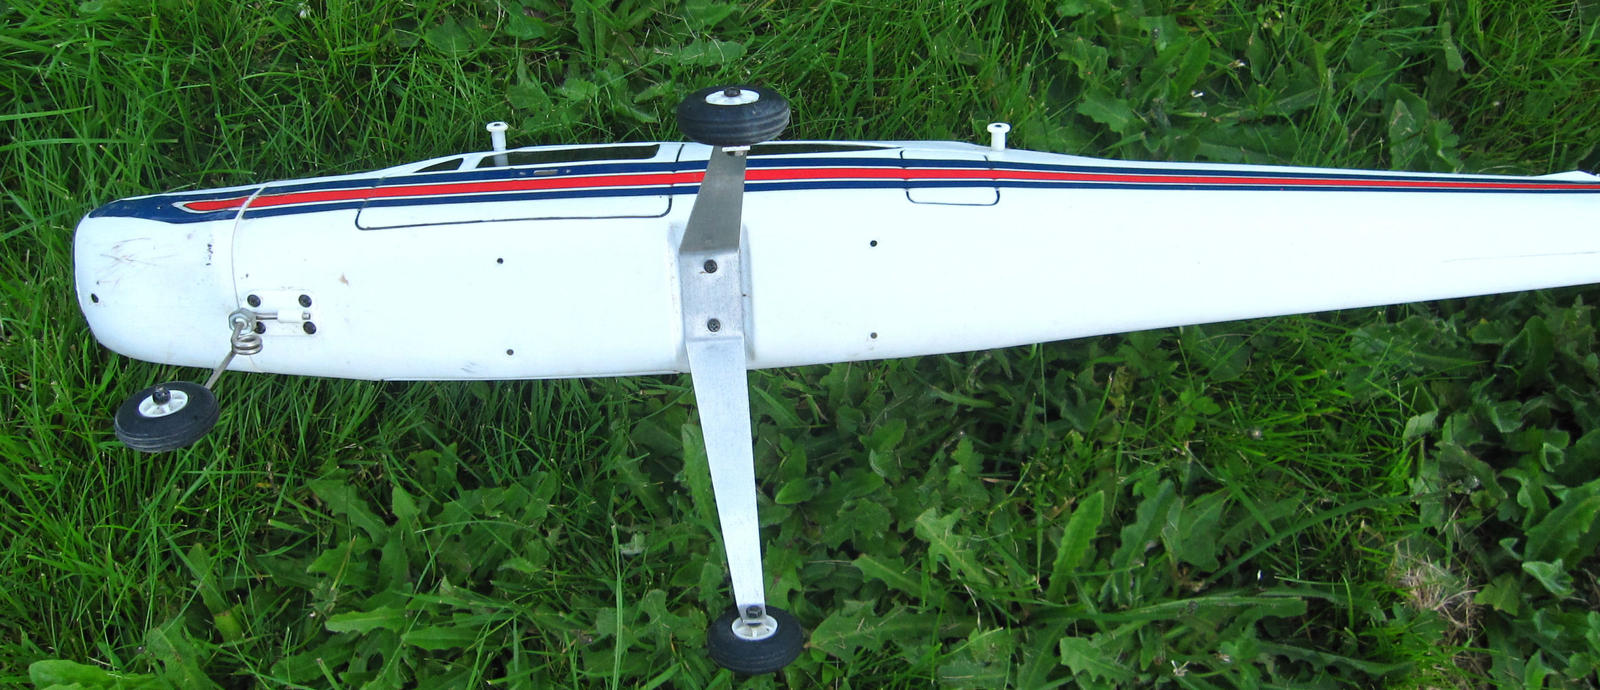 Name:  Kyosho Cessna 177 2.jpg